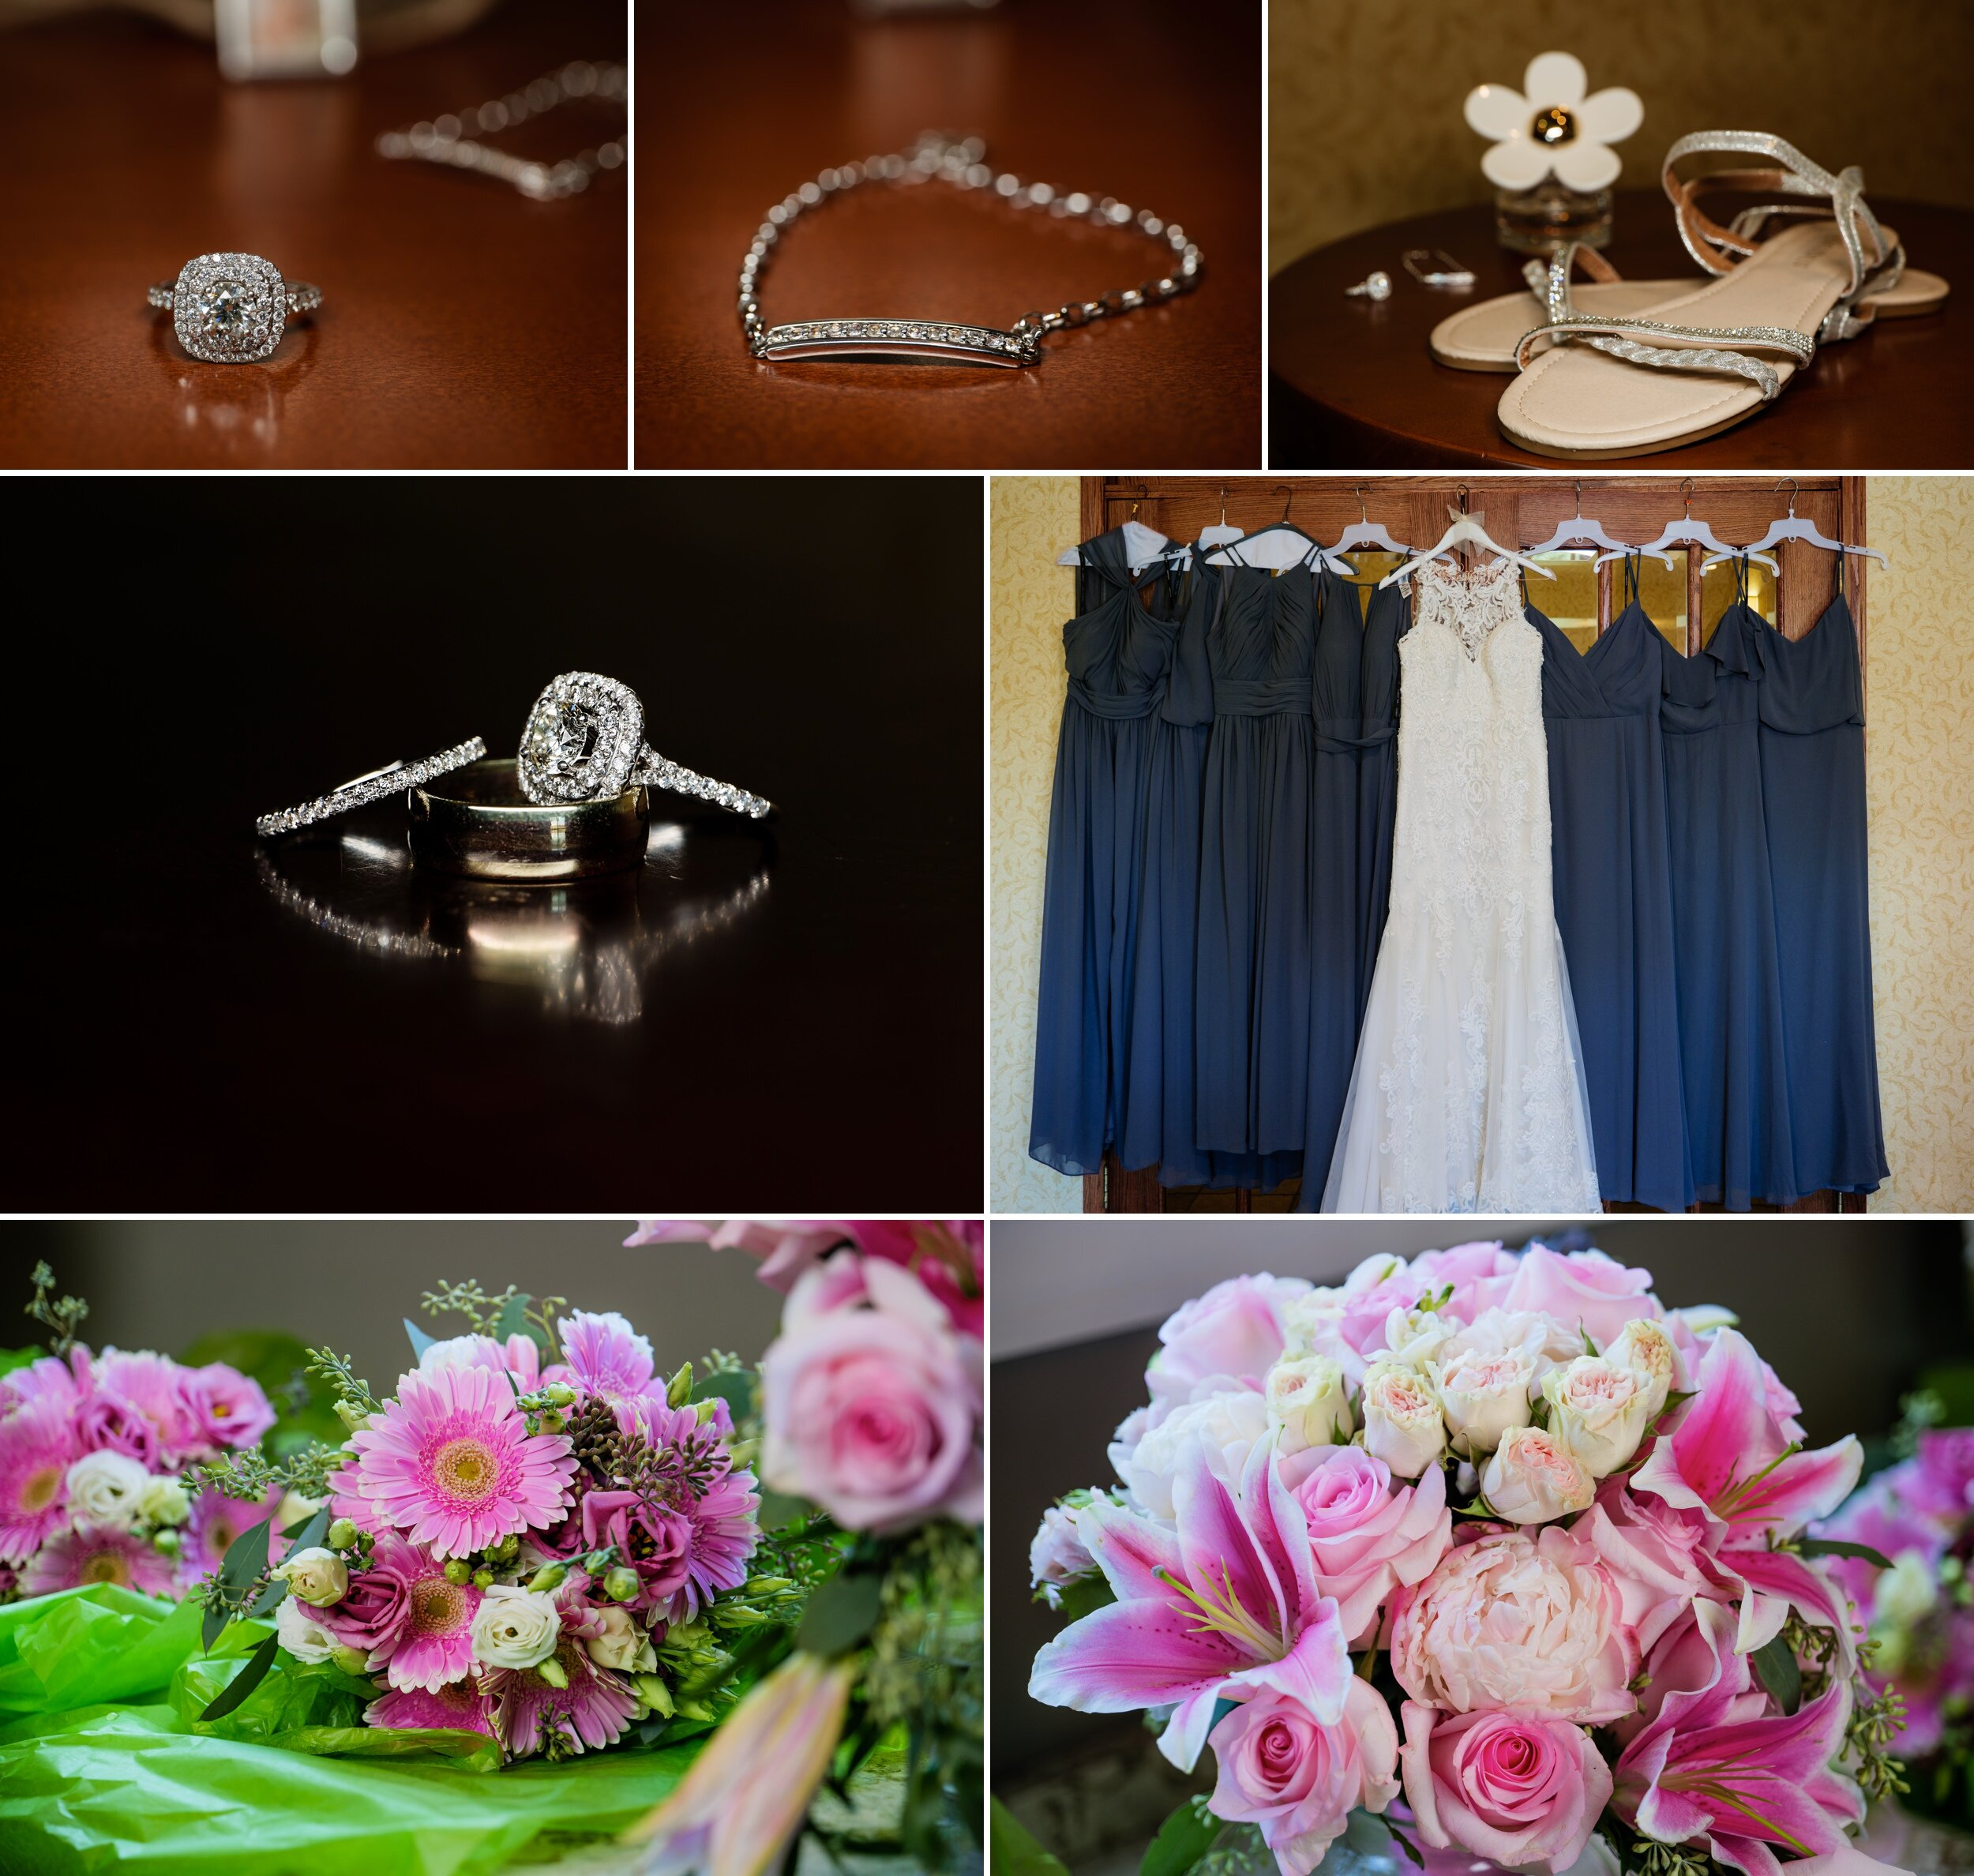 Bridal details for a September wedding at Aberdeen Manor.